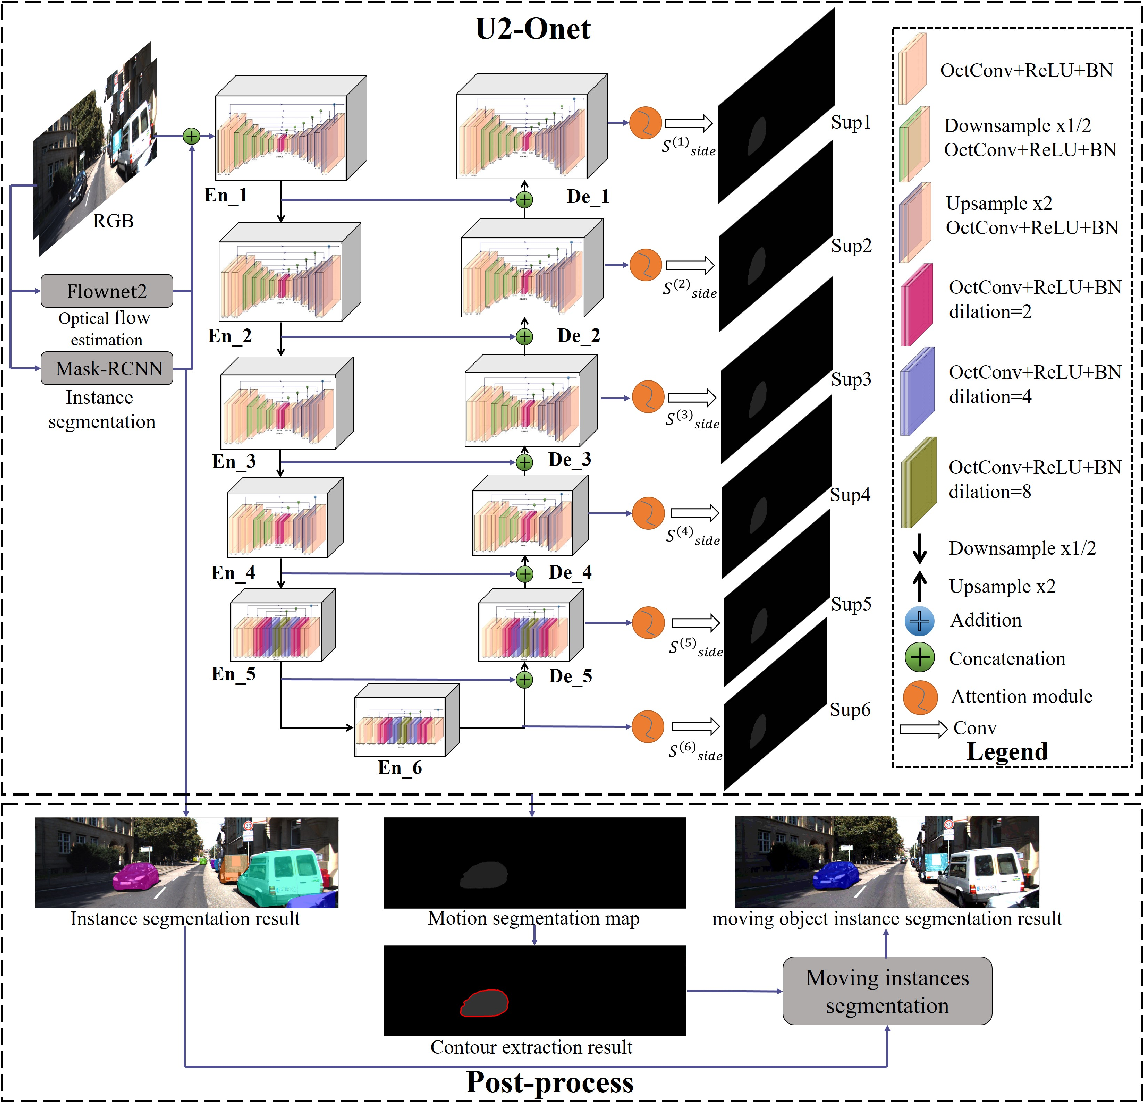 Figure 1 for U2-ONet: A Two-level Nested Octave U-structure with Multiscale Attention Mechanism for Moving Instances Segmentation